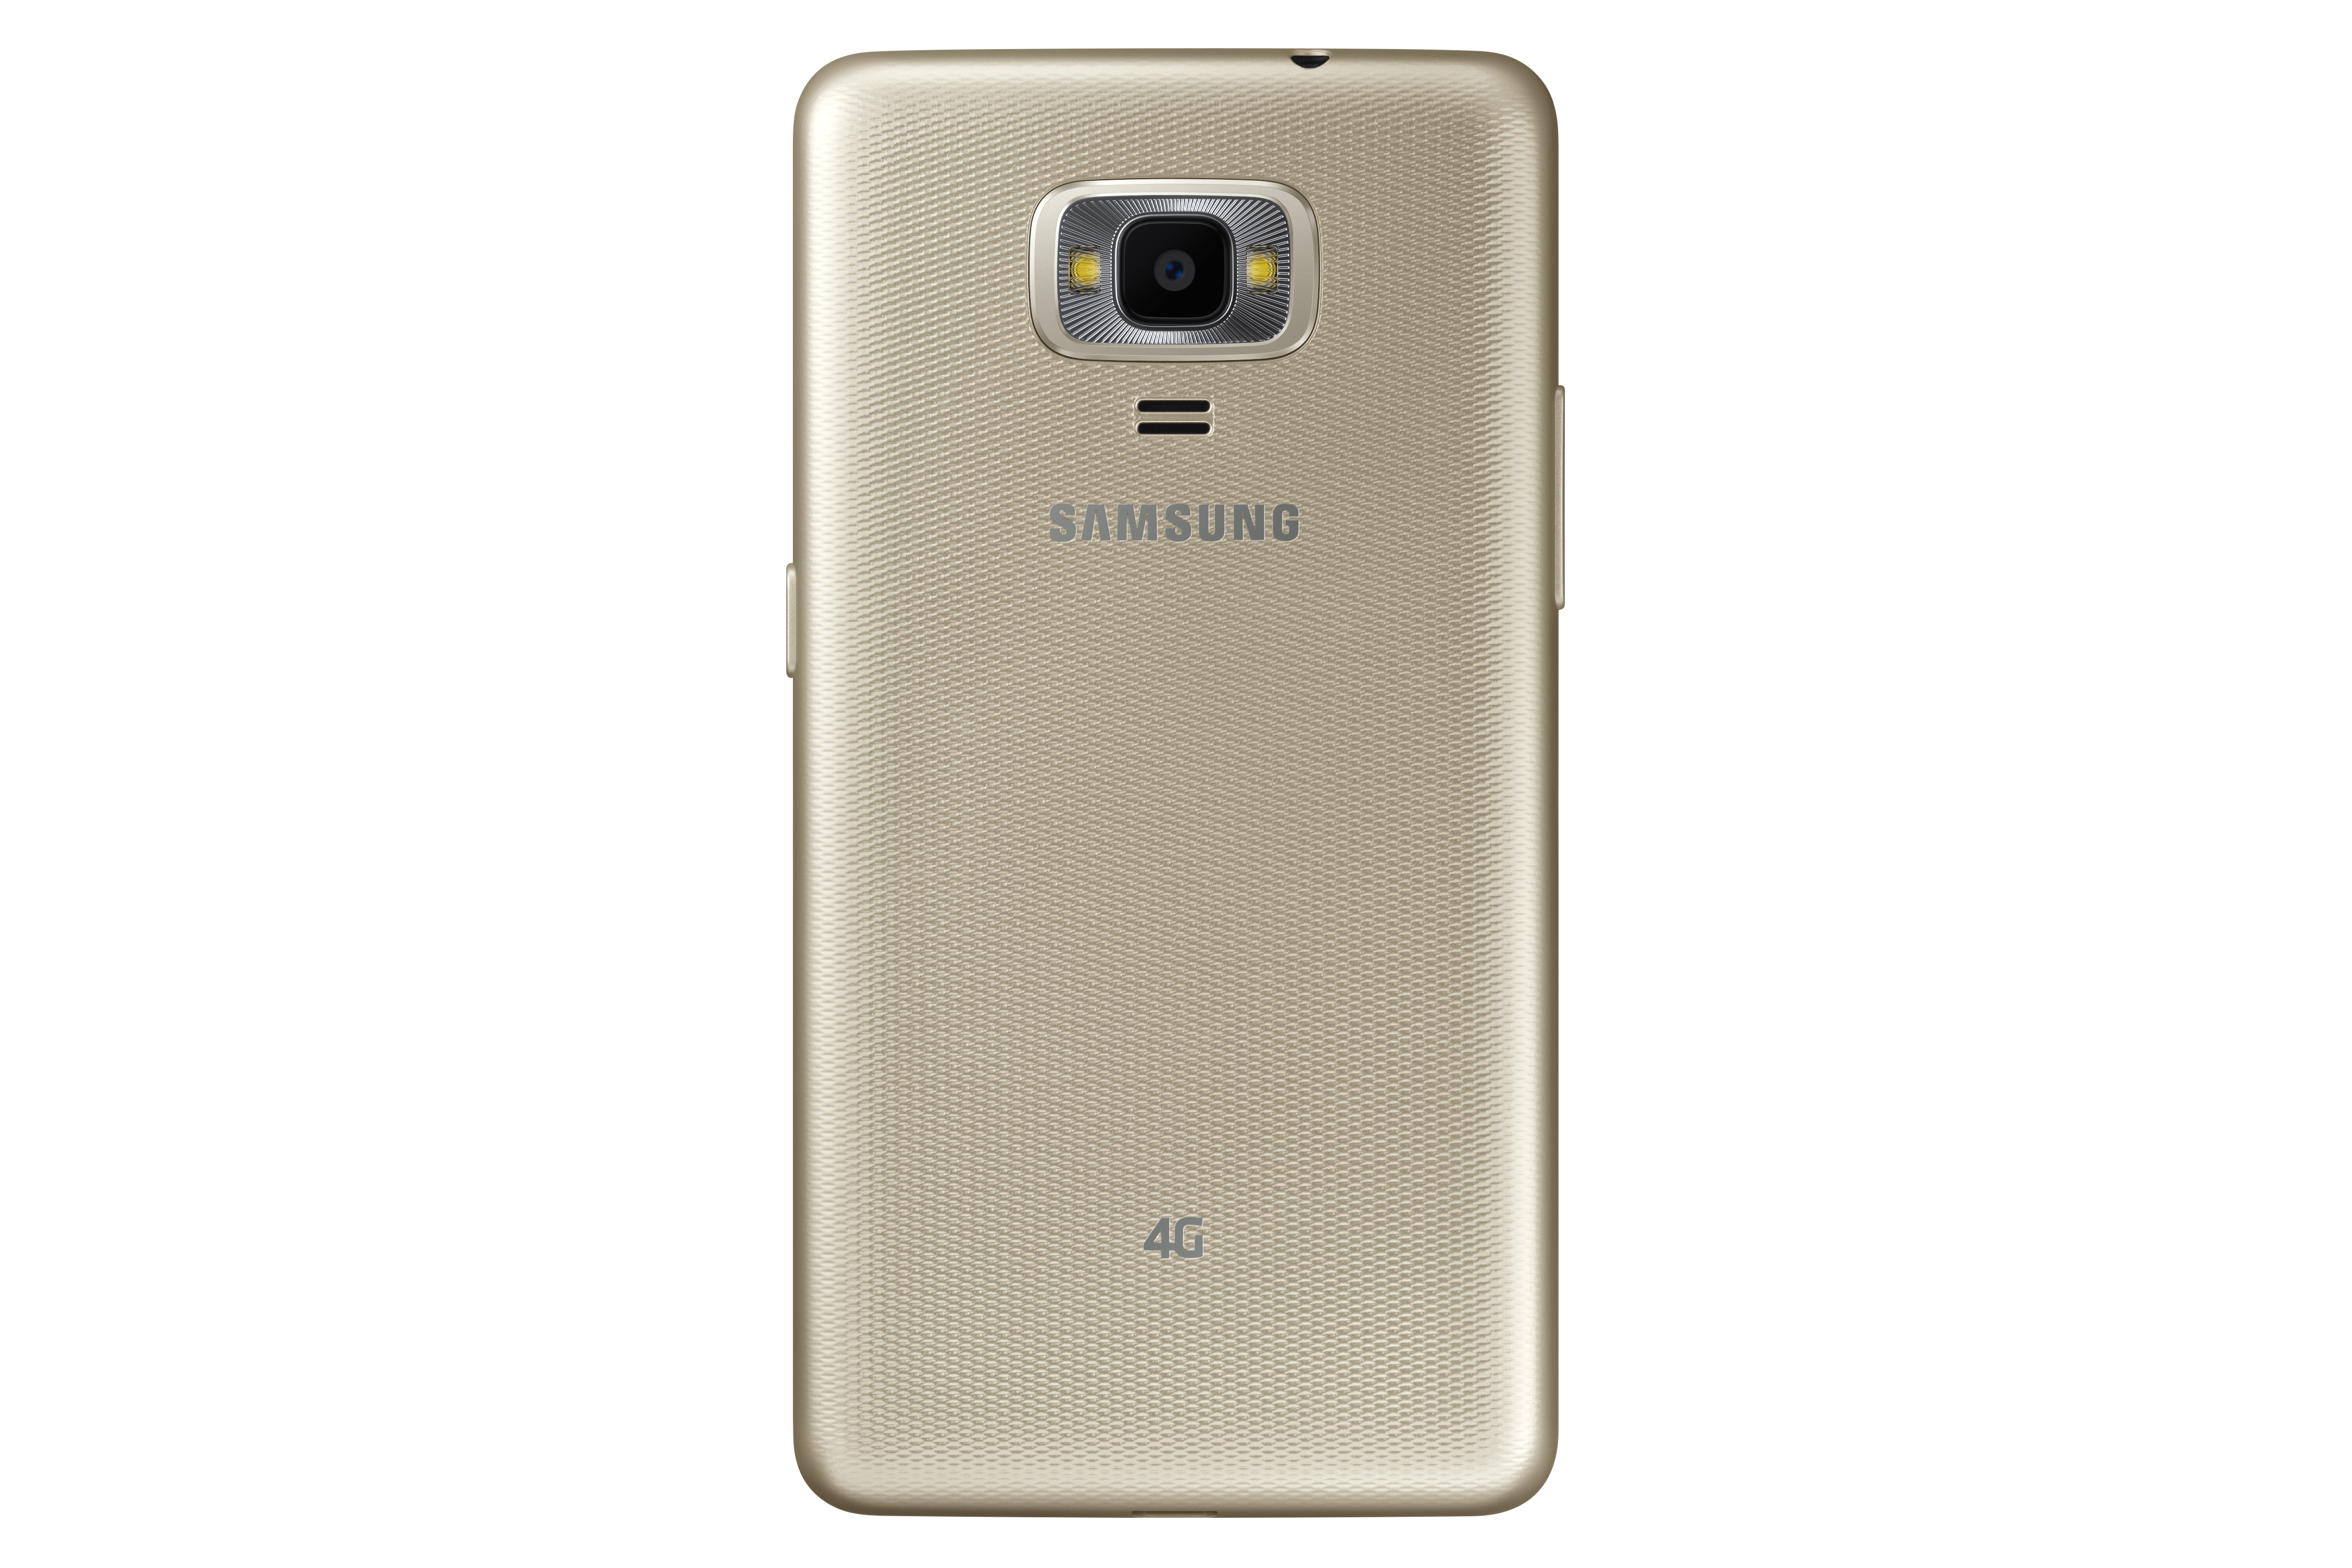 Samsung To Launch A New Smarter Z4 With Tizen 30 Os Hp Galaxy Z2 Lazada Gold